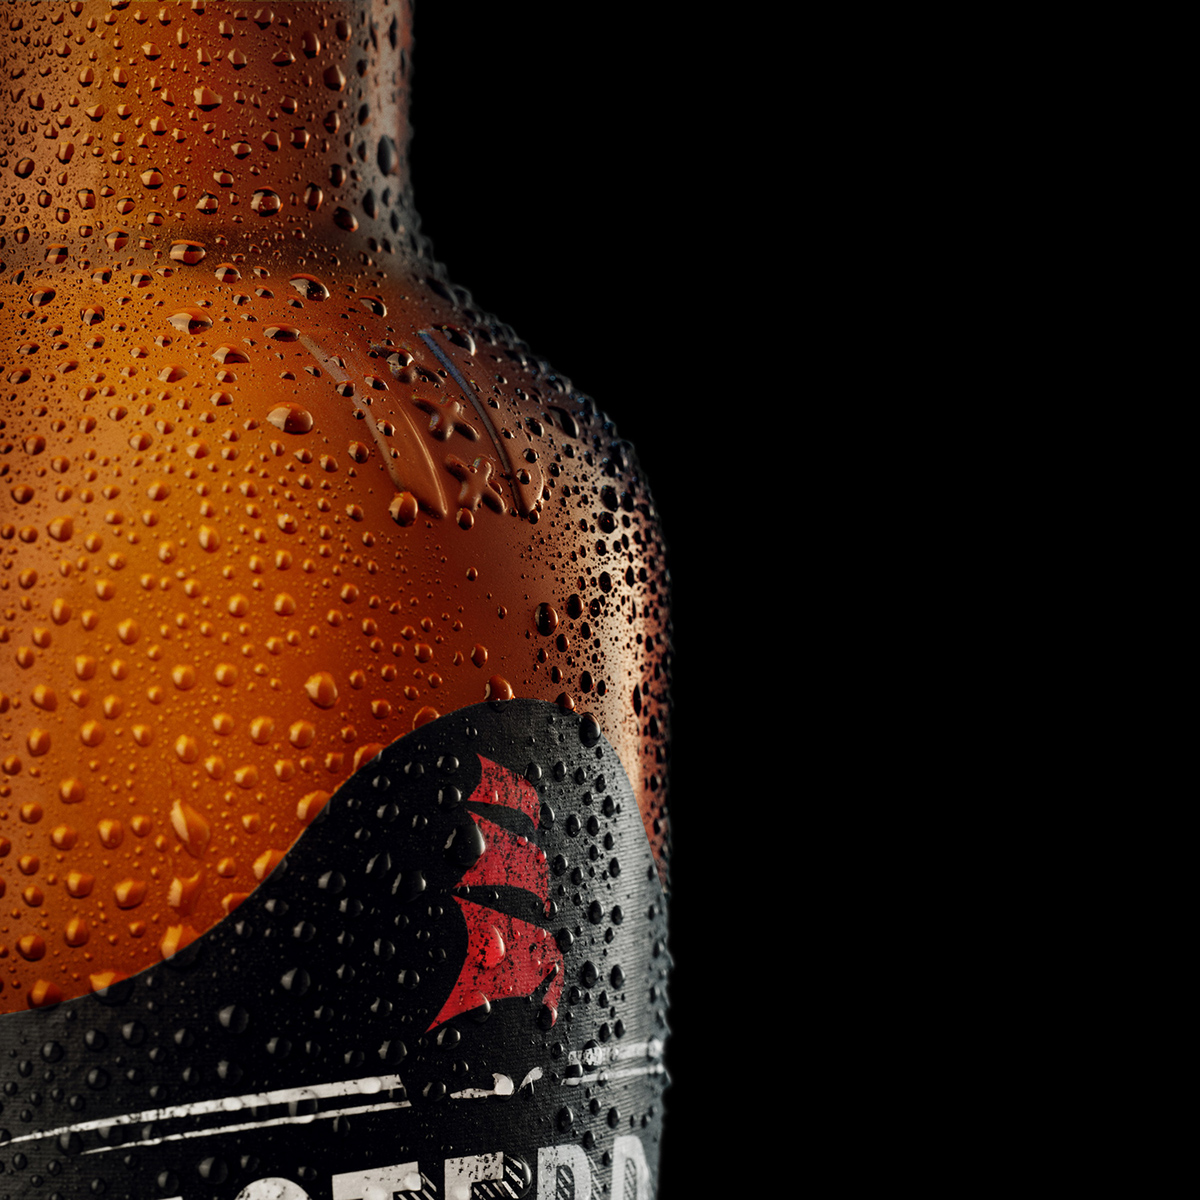 amsterdam navigator beer Photoretouch shooting drops bottle can open tasty Food  porn lights